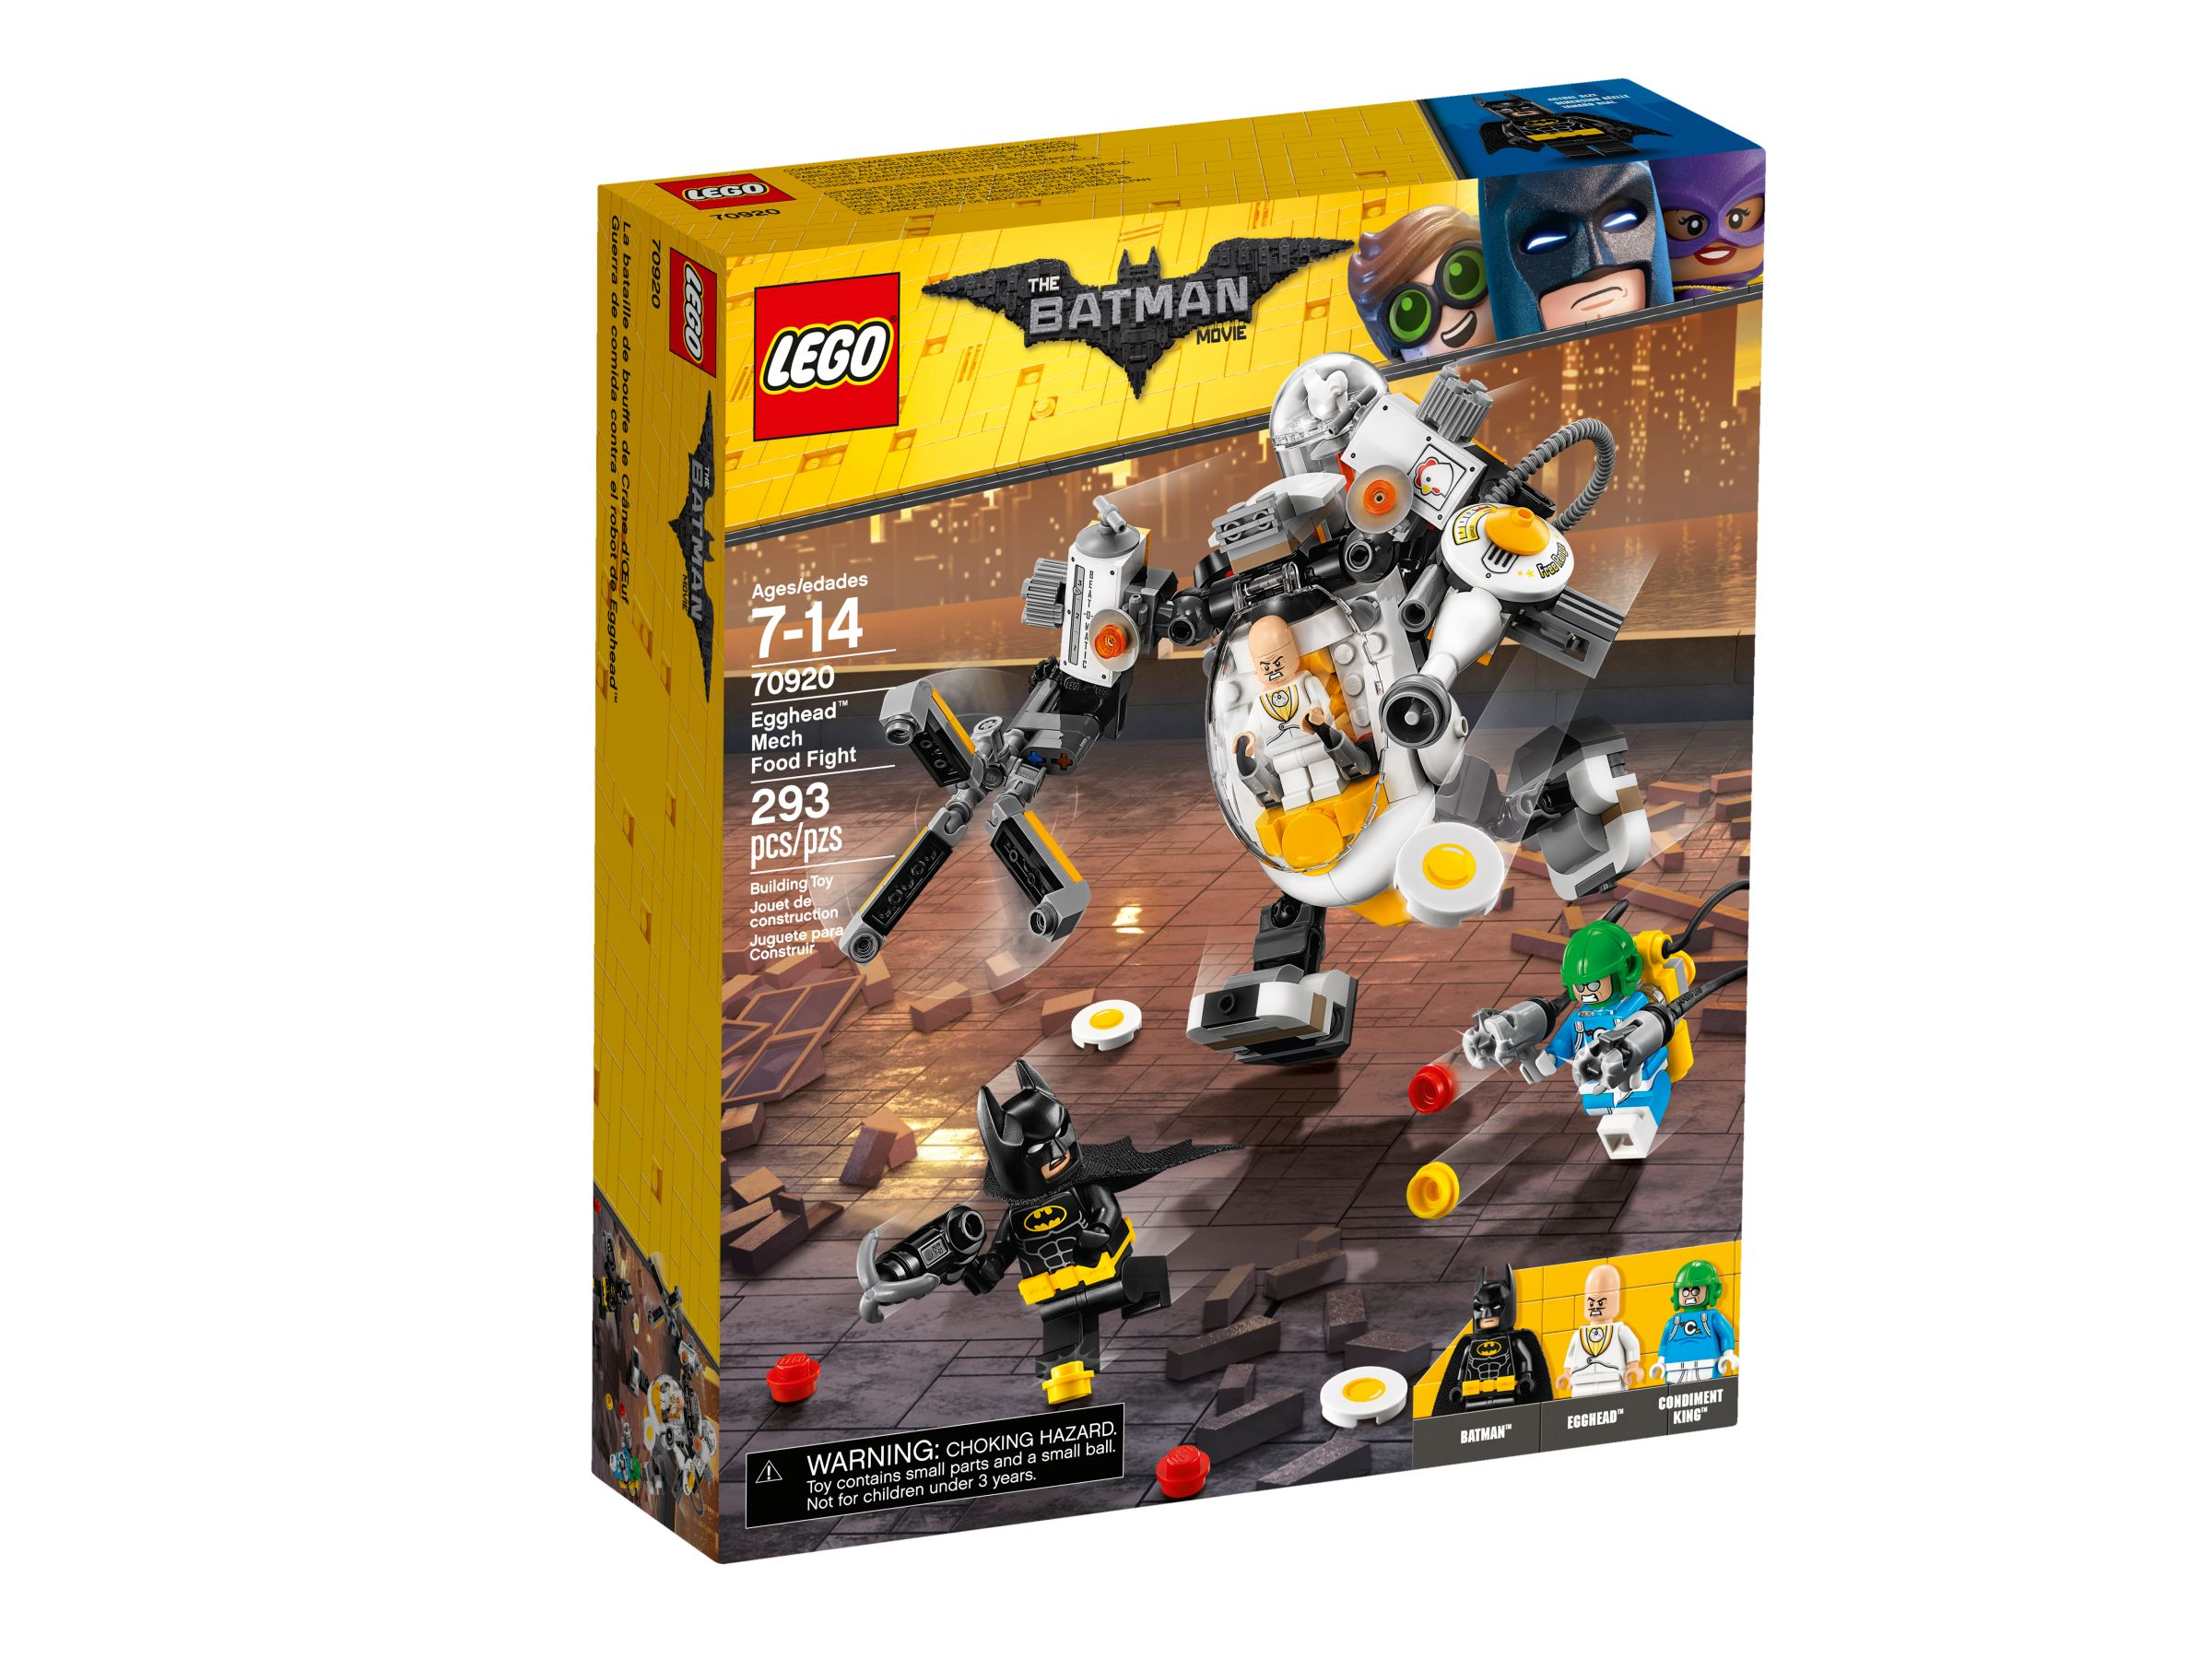 LEGO The LEGO Batman Movie 70920 Egghead bei der Roboter-Essenschlacht LEGO_70920_alt1.jpg